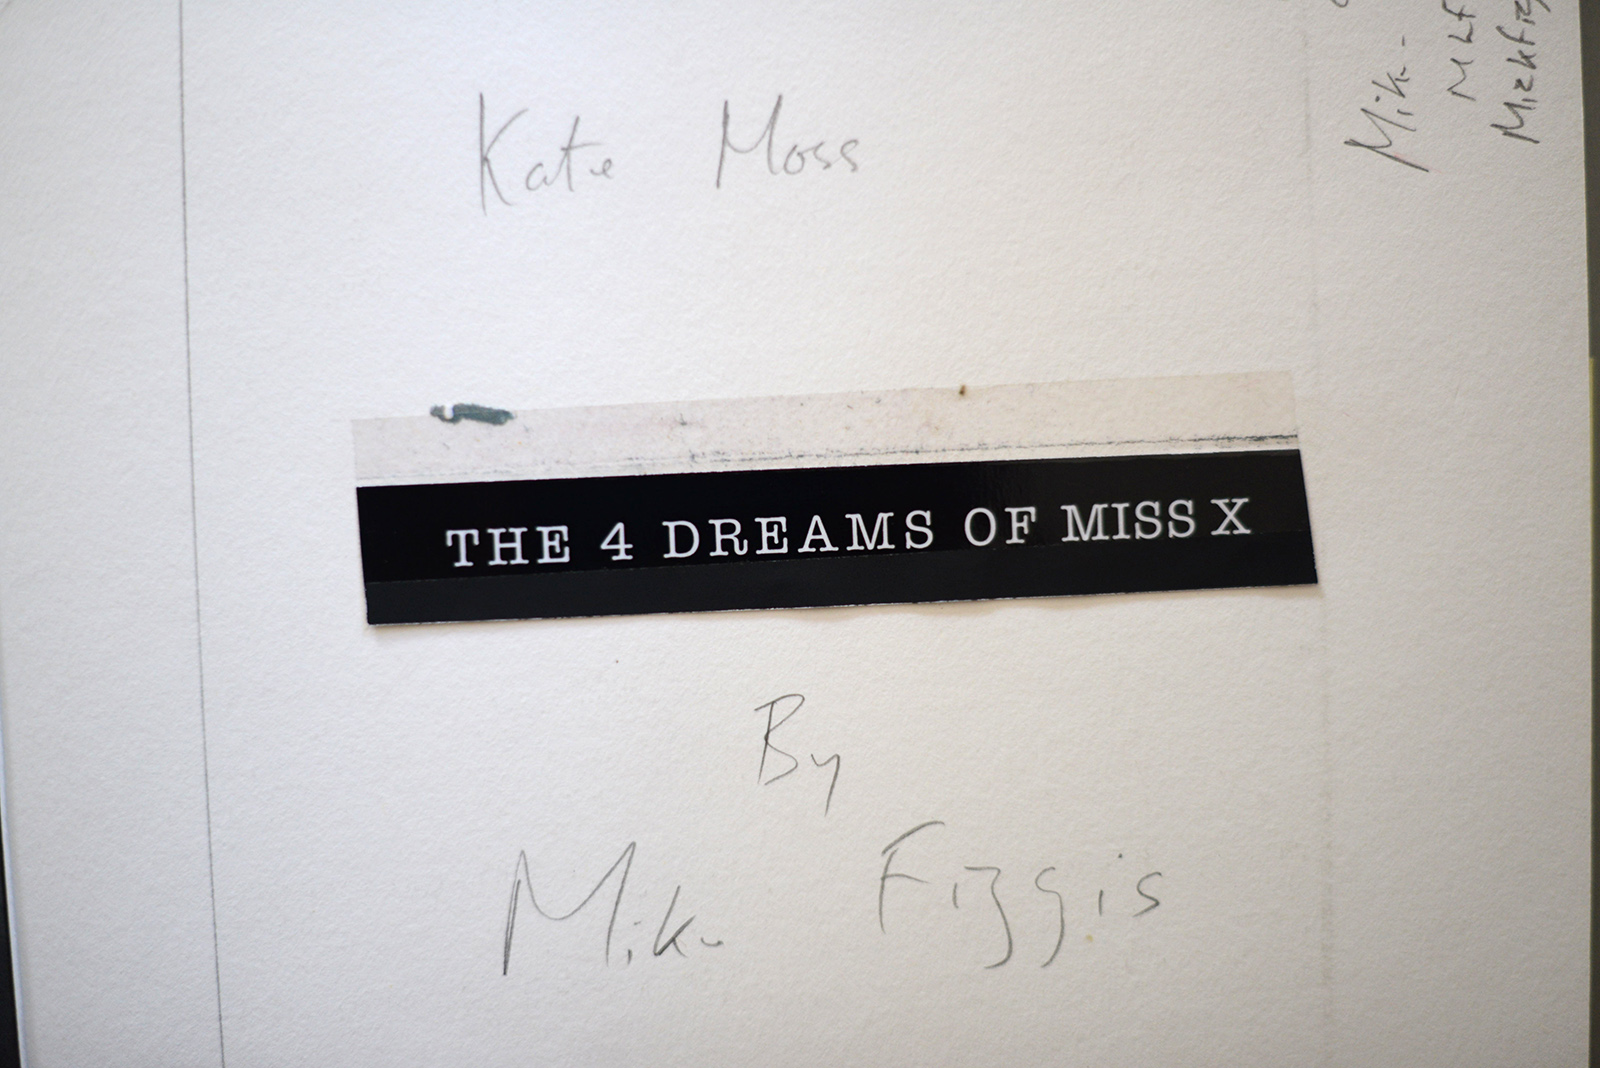 the four dreams of miss x